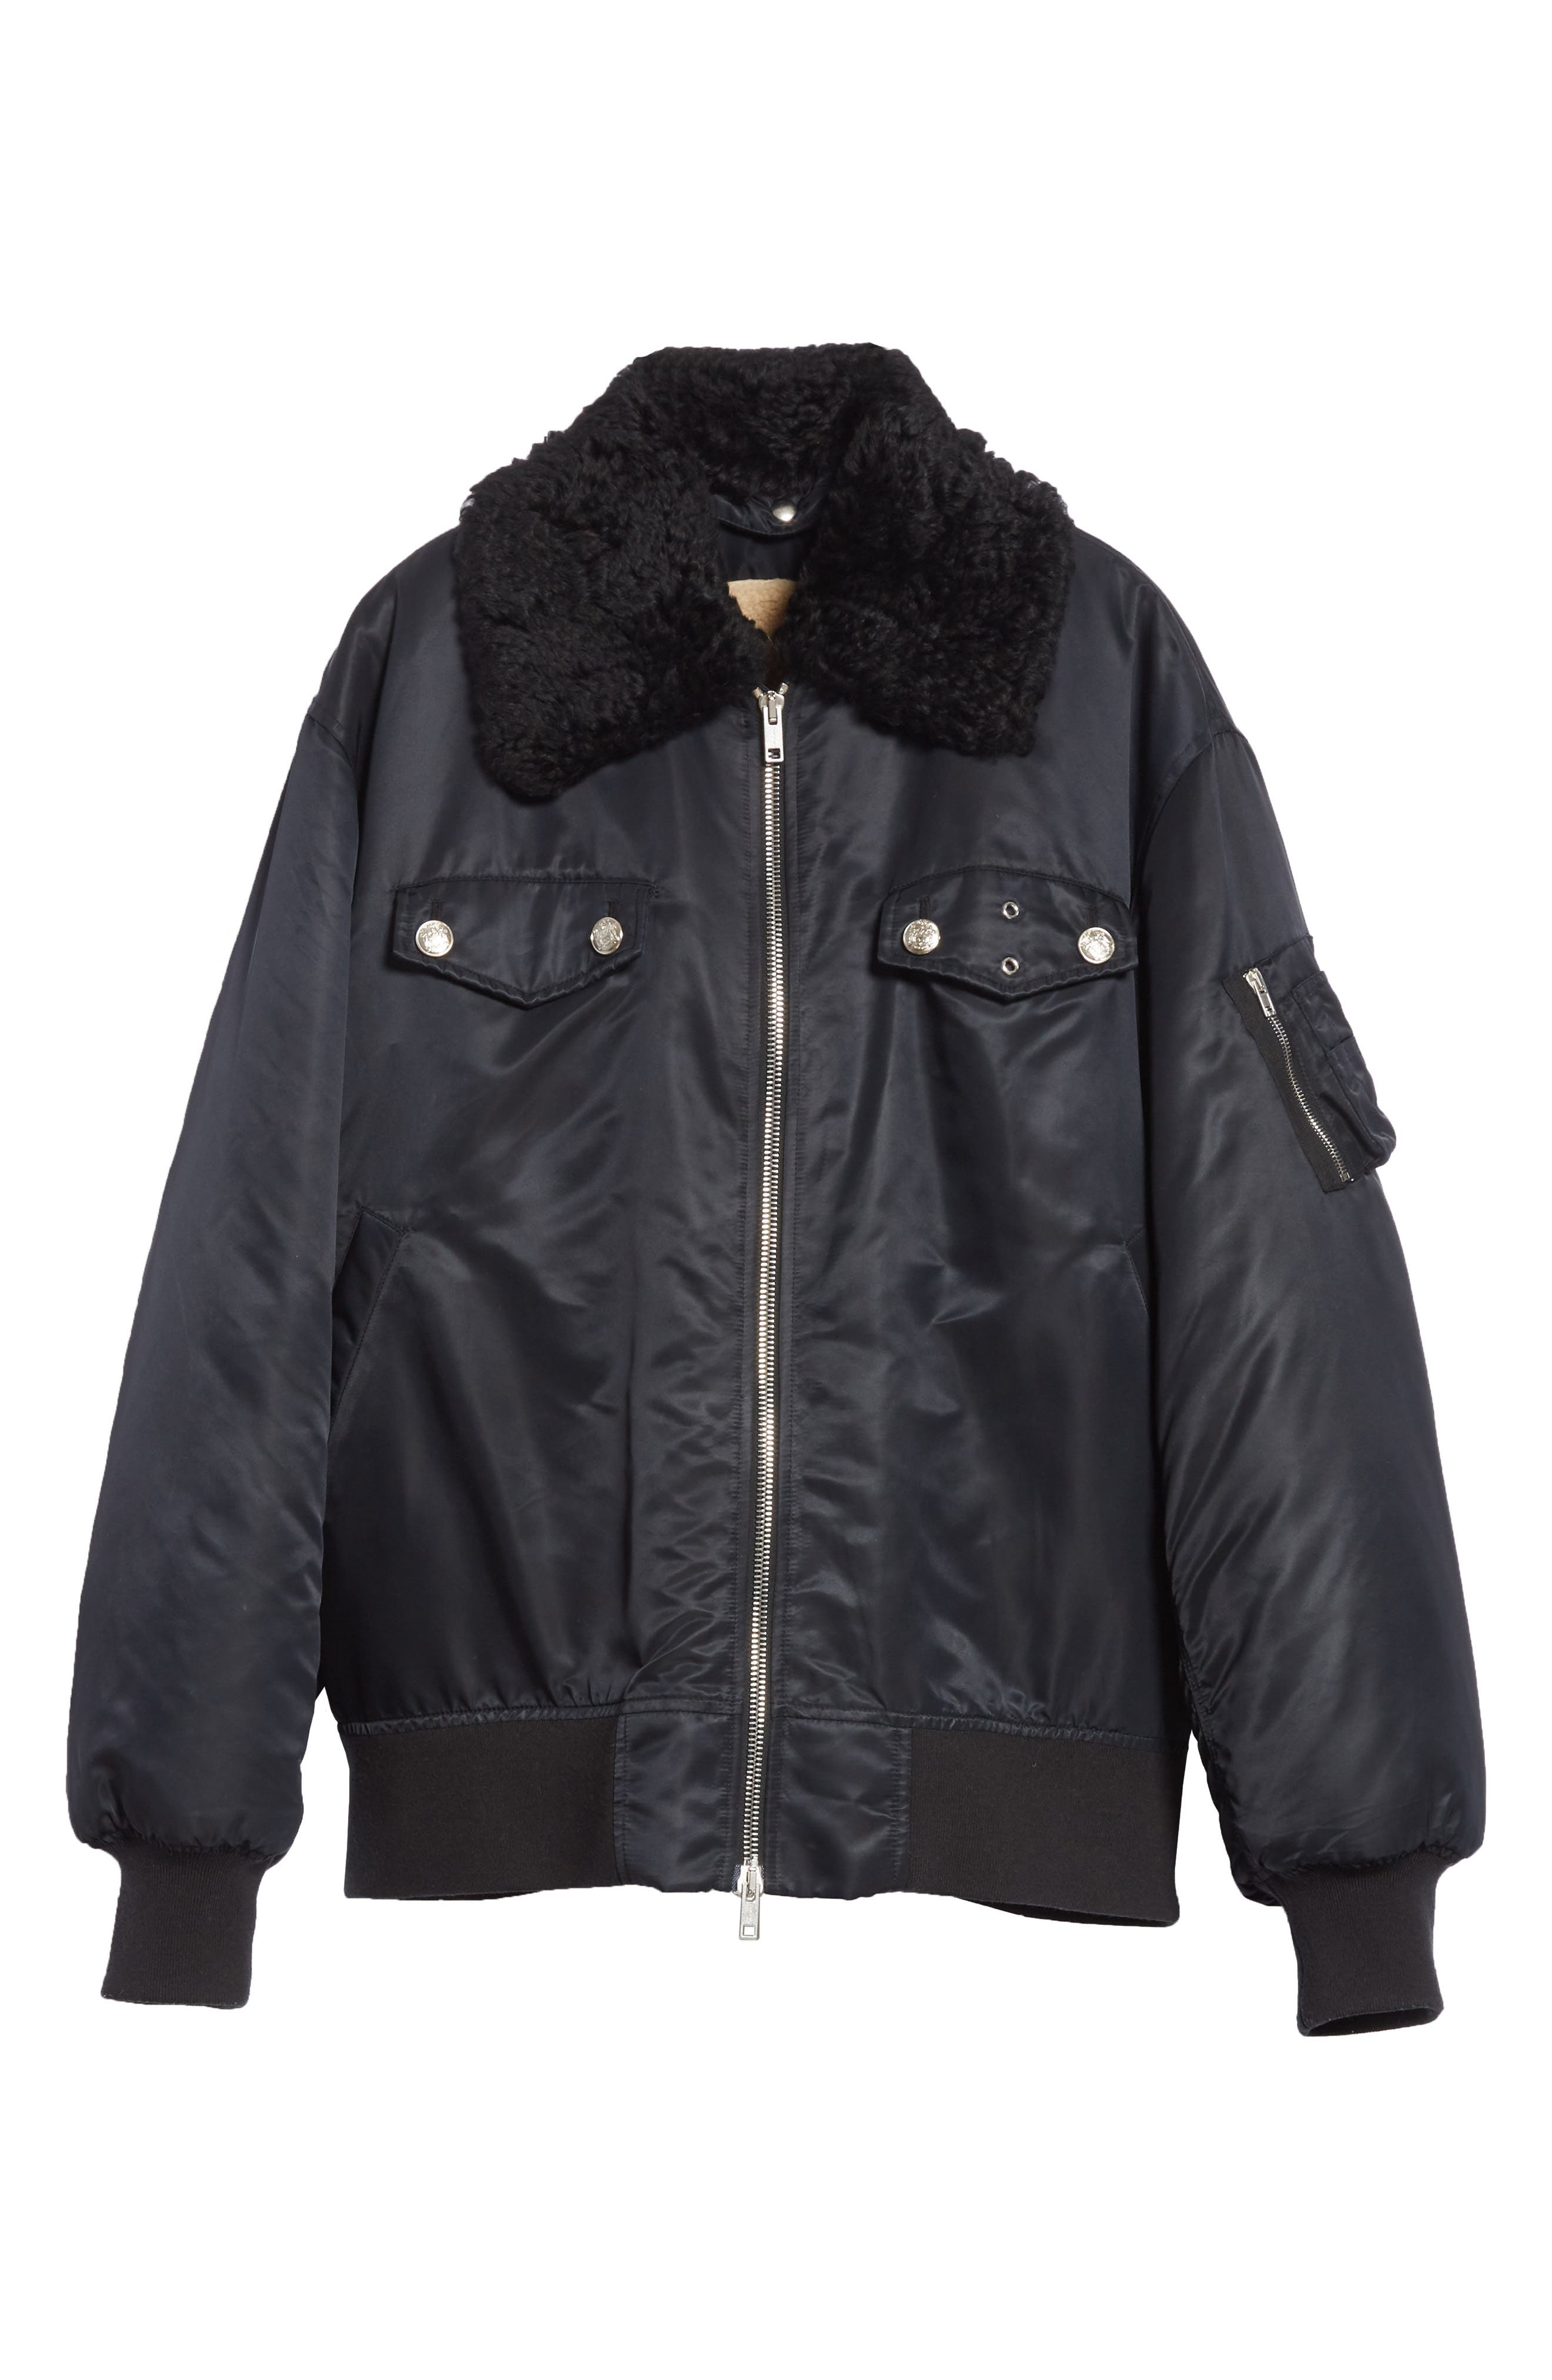 Oversize Bomber Jacket with Genuine Shearling Collar,                             Alternate thumbnail 5, color,                             BLACK